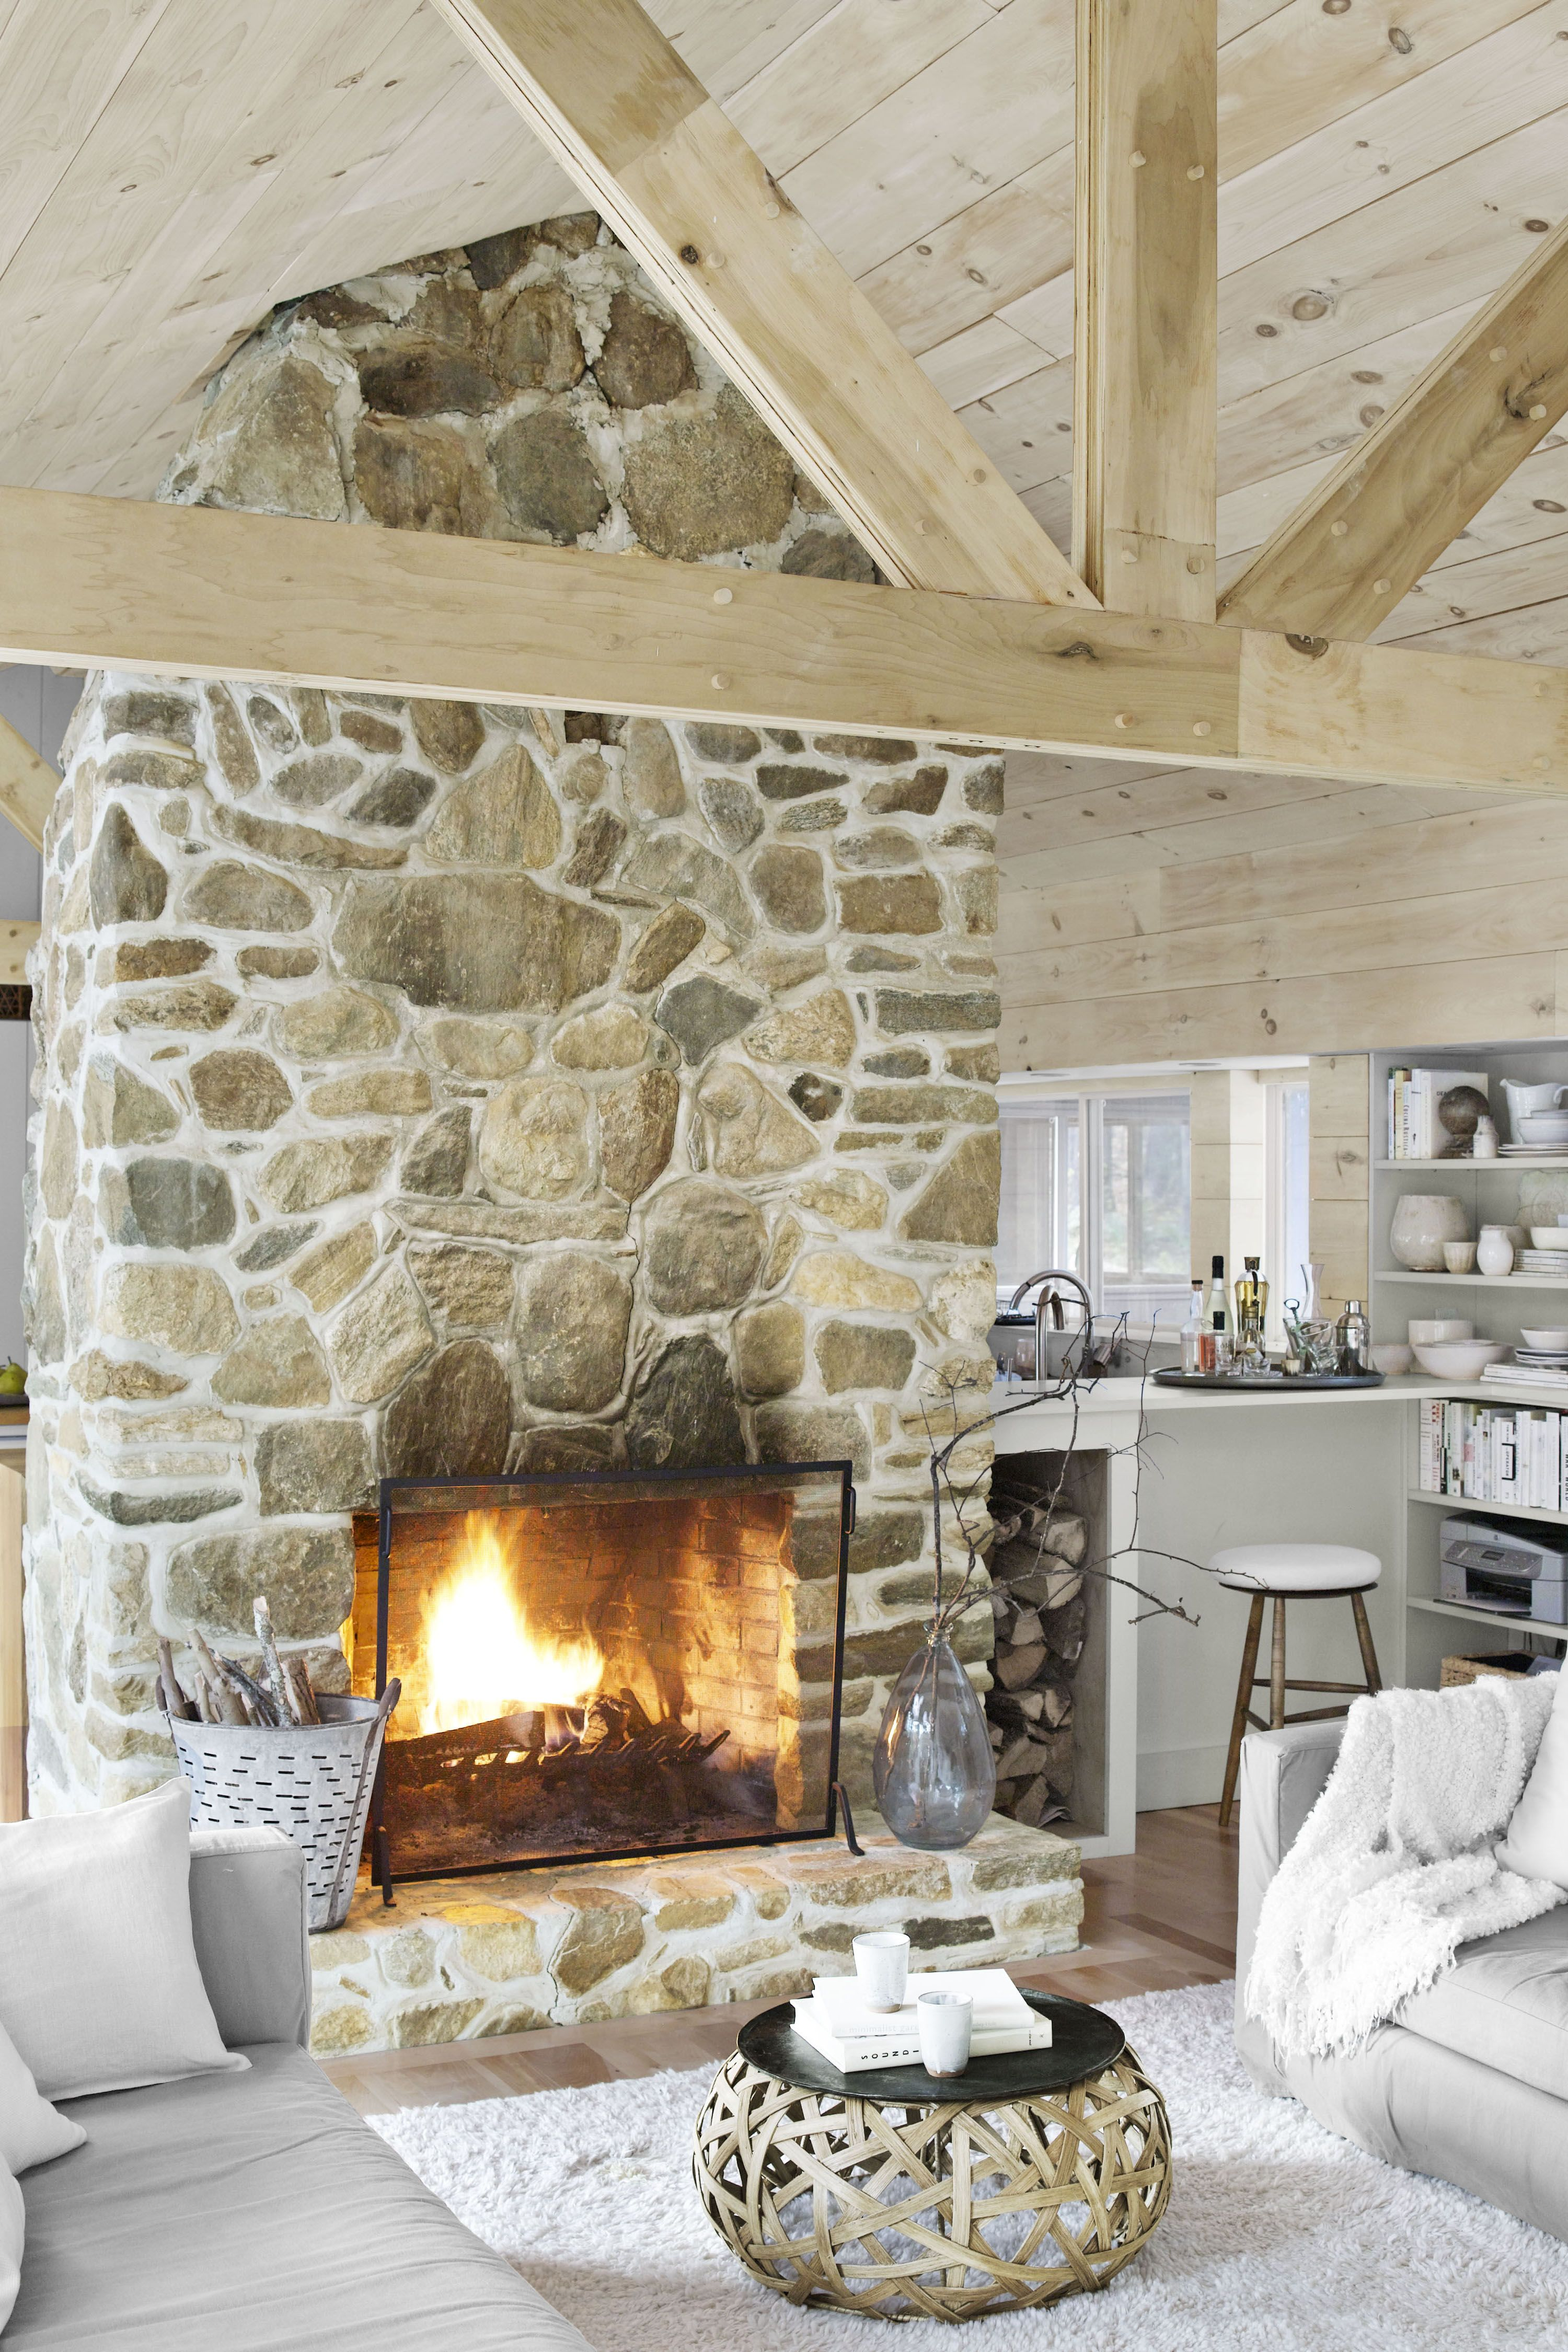 10 modern rustic decor ideas these modern rustic rooms prove you rh countryliving com